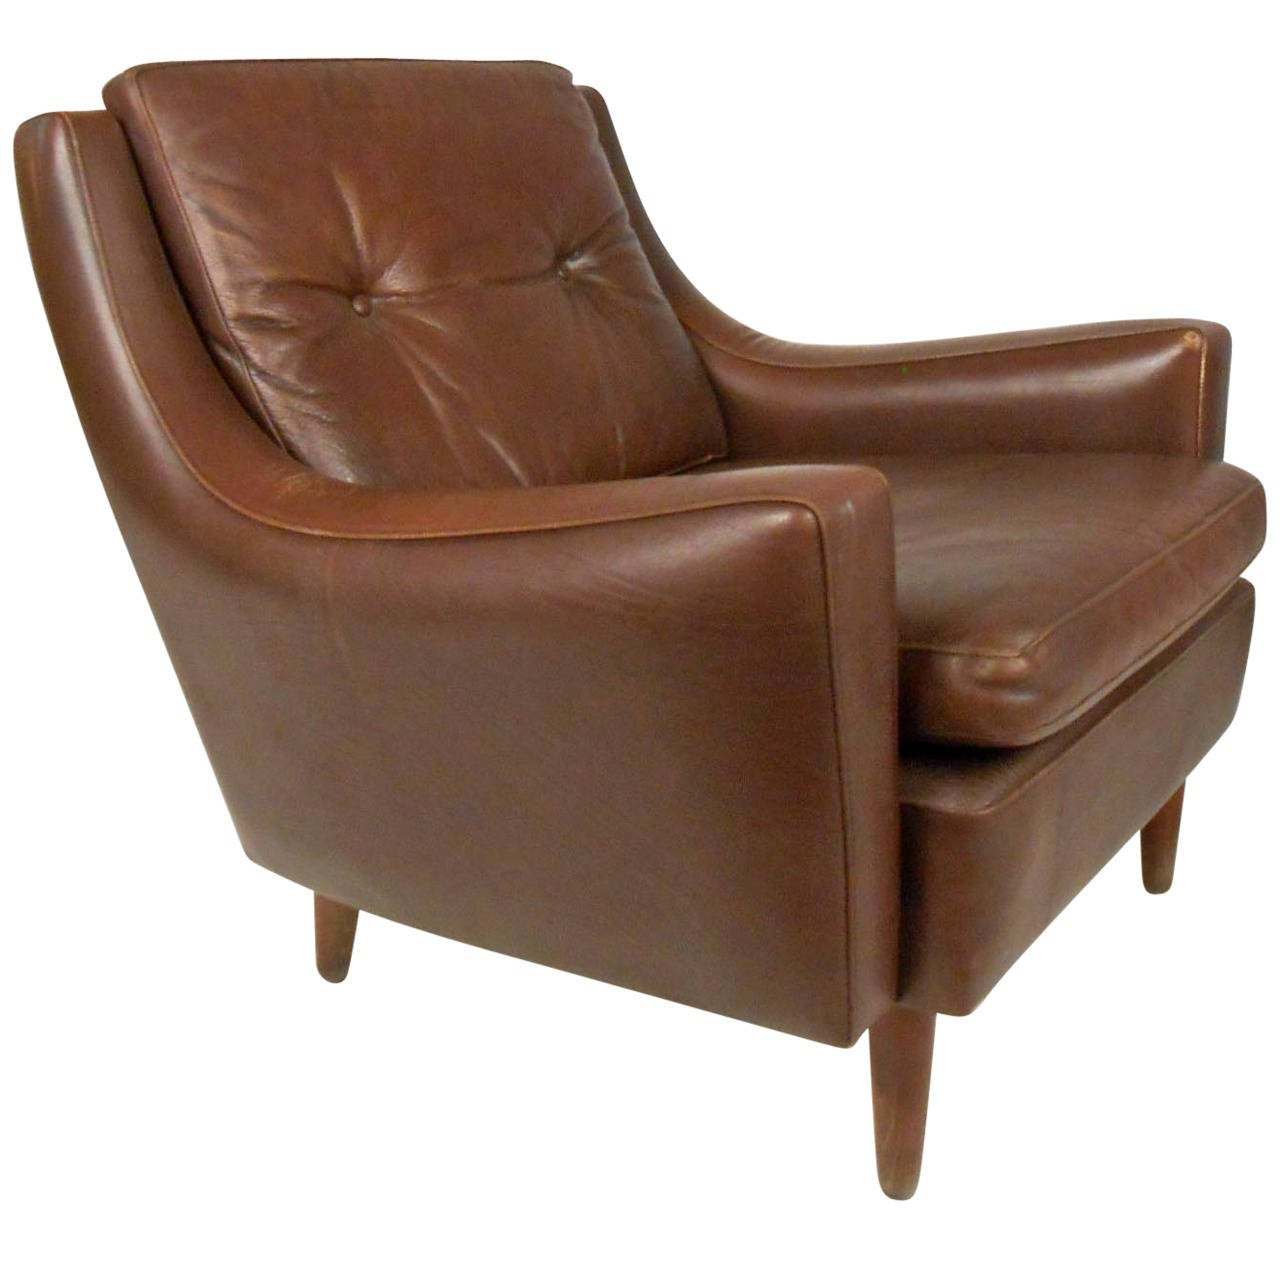 Mid century modern tufted brown leather club chair at 1stdibs for Mid century modern leather chairs